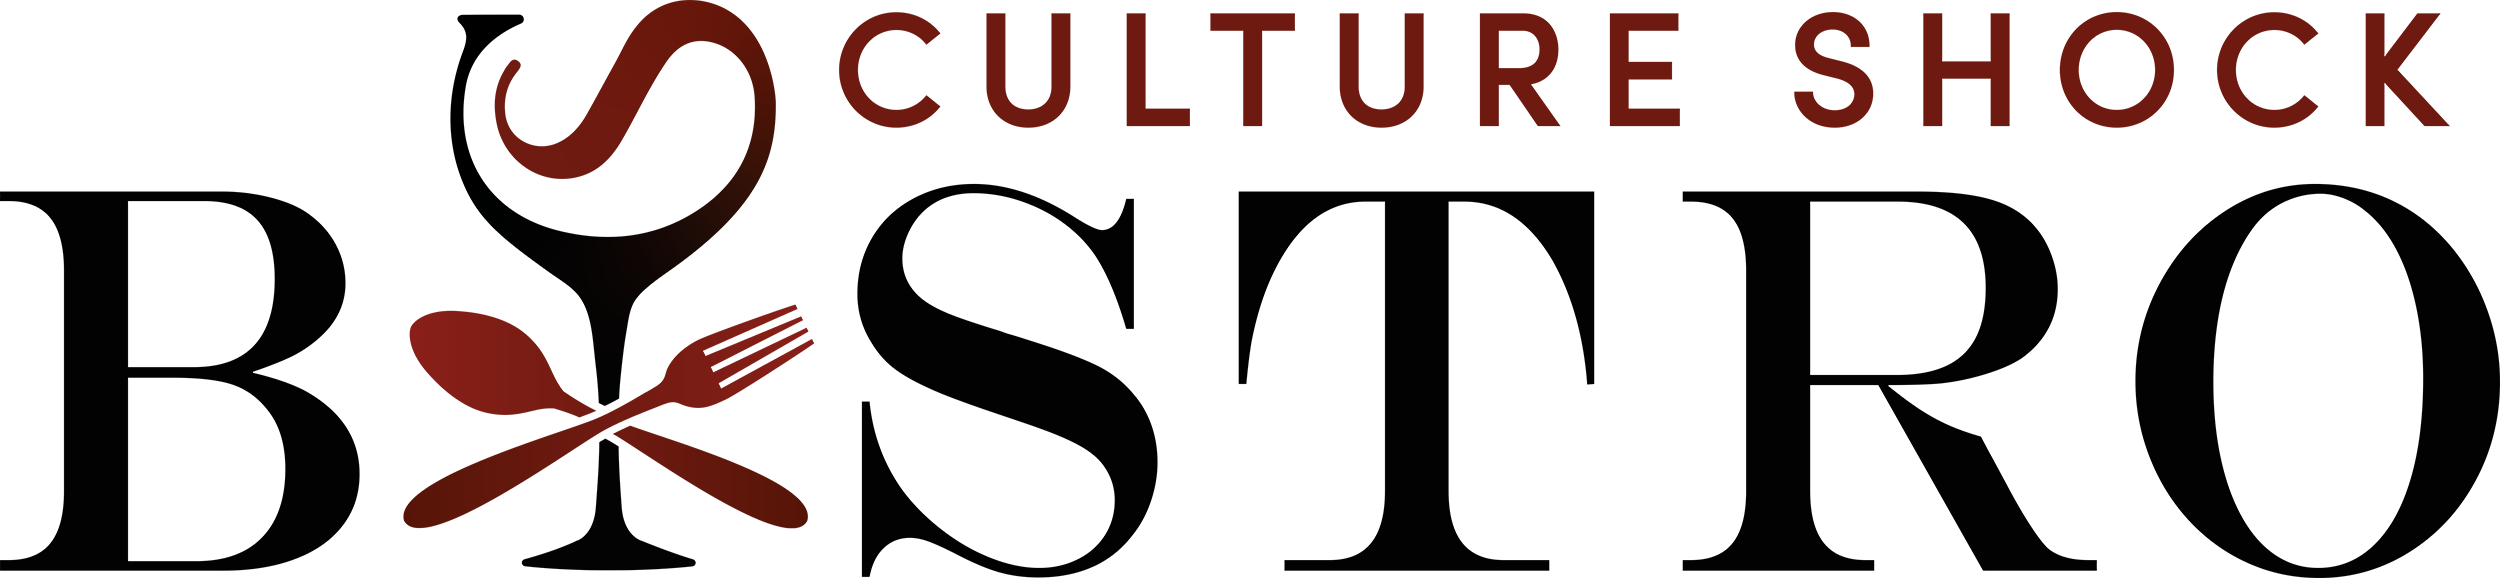 Culture Shock Bistro food truck logo.